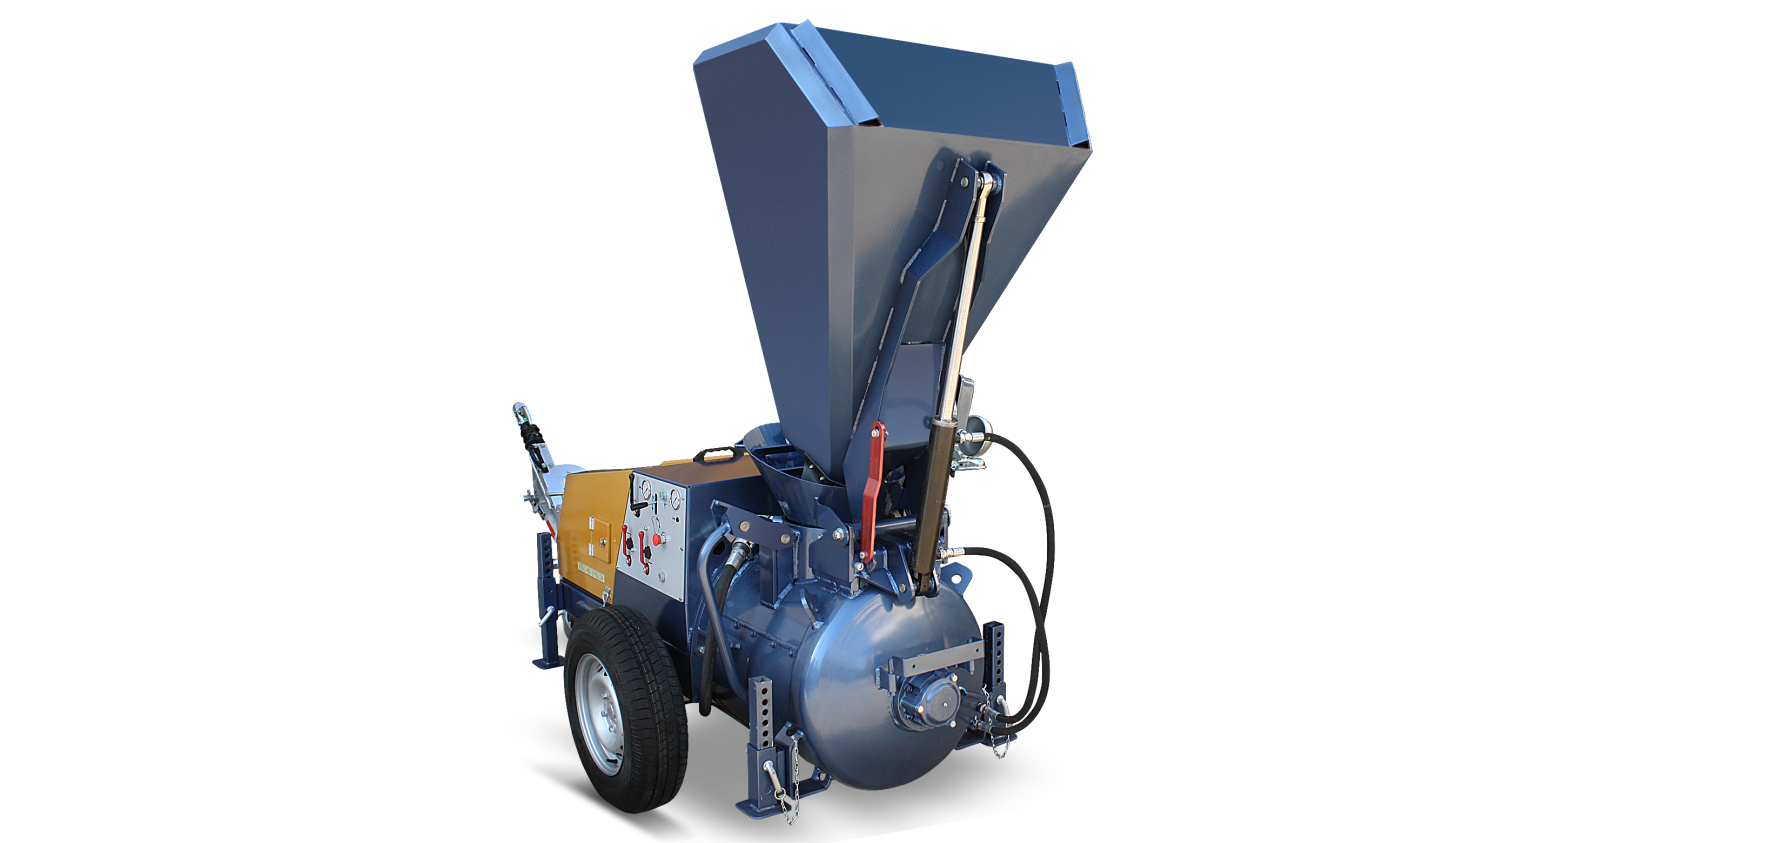 AERO 450 EPSILON concrete pumps